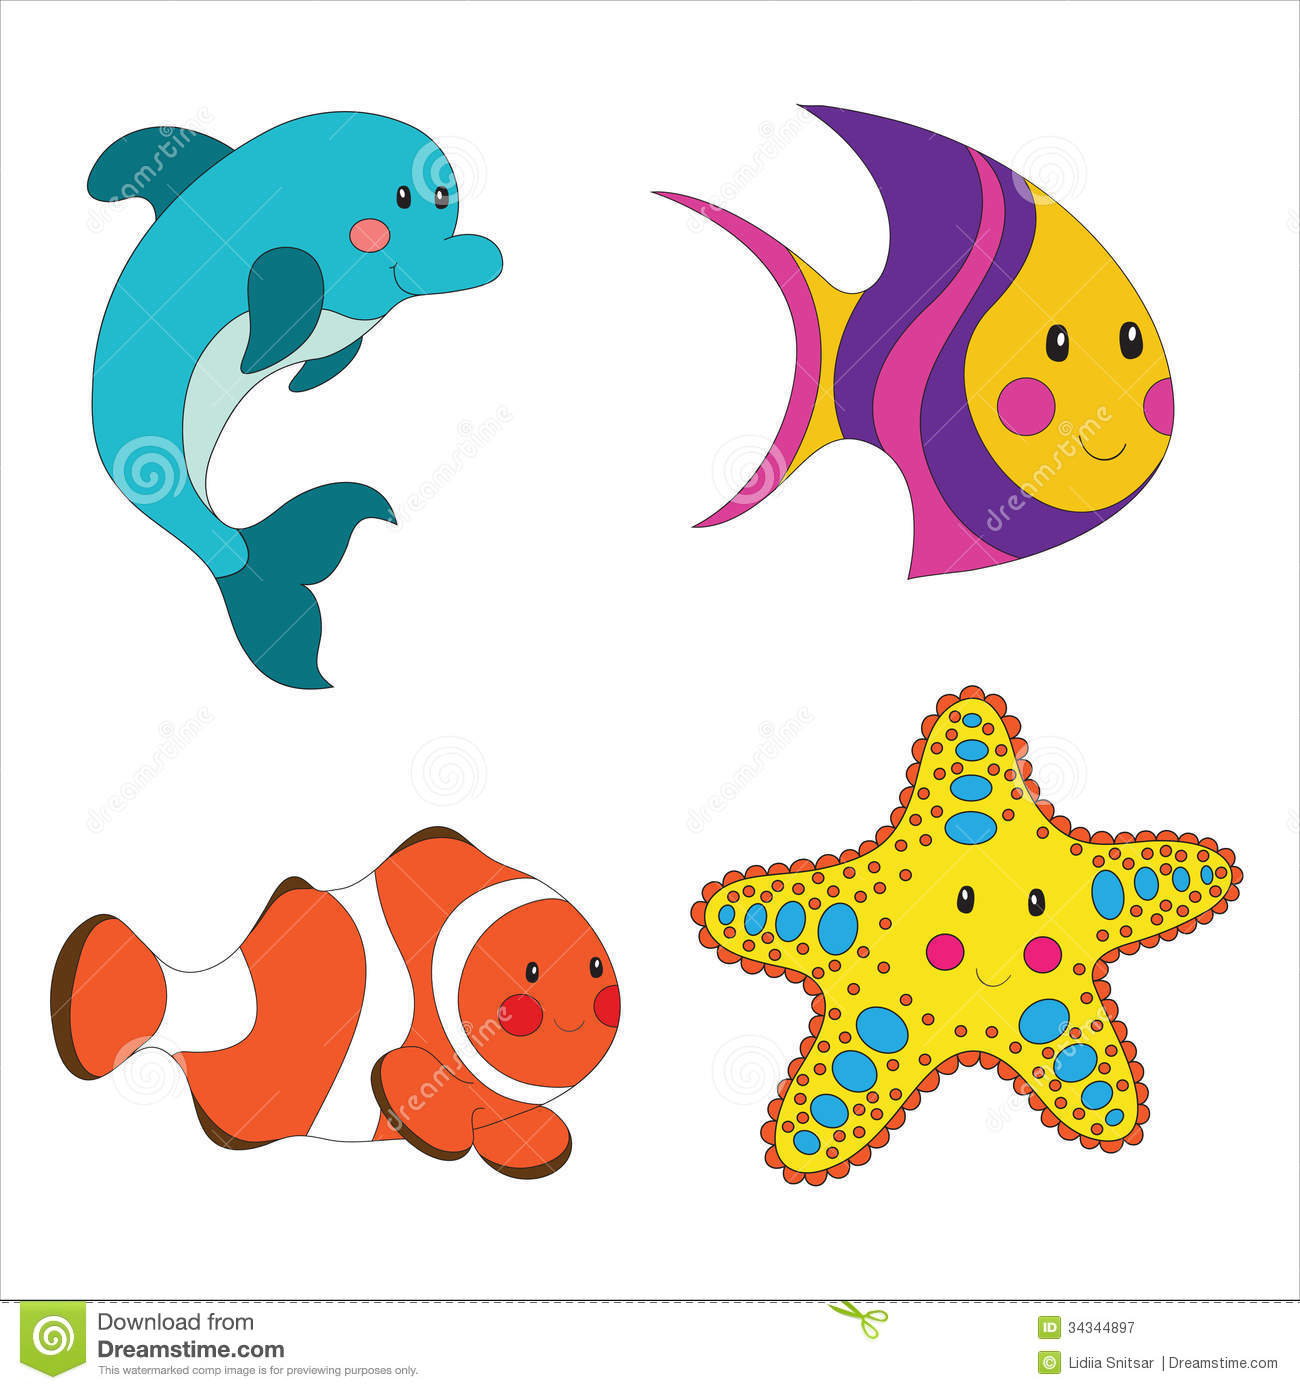 sea animals clipart free at getdrawings com free for personal use rh getdrawings com free animal clipart free animal clipart outline